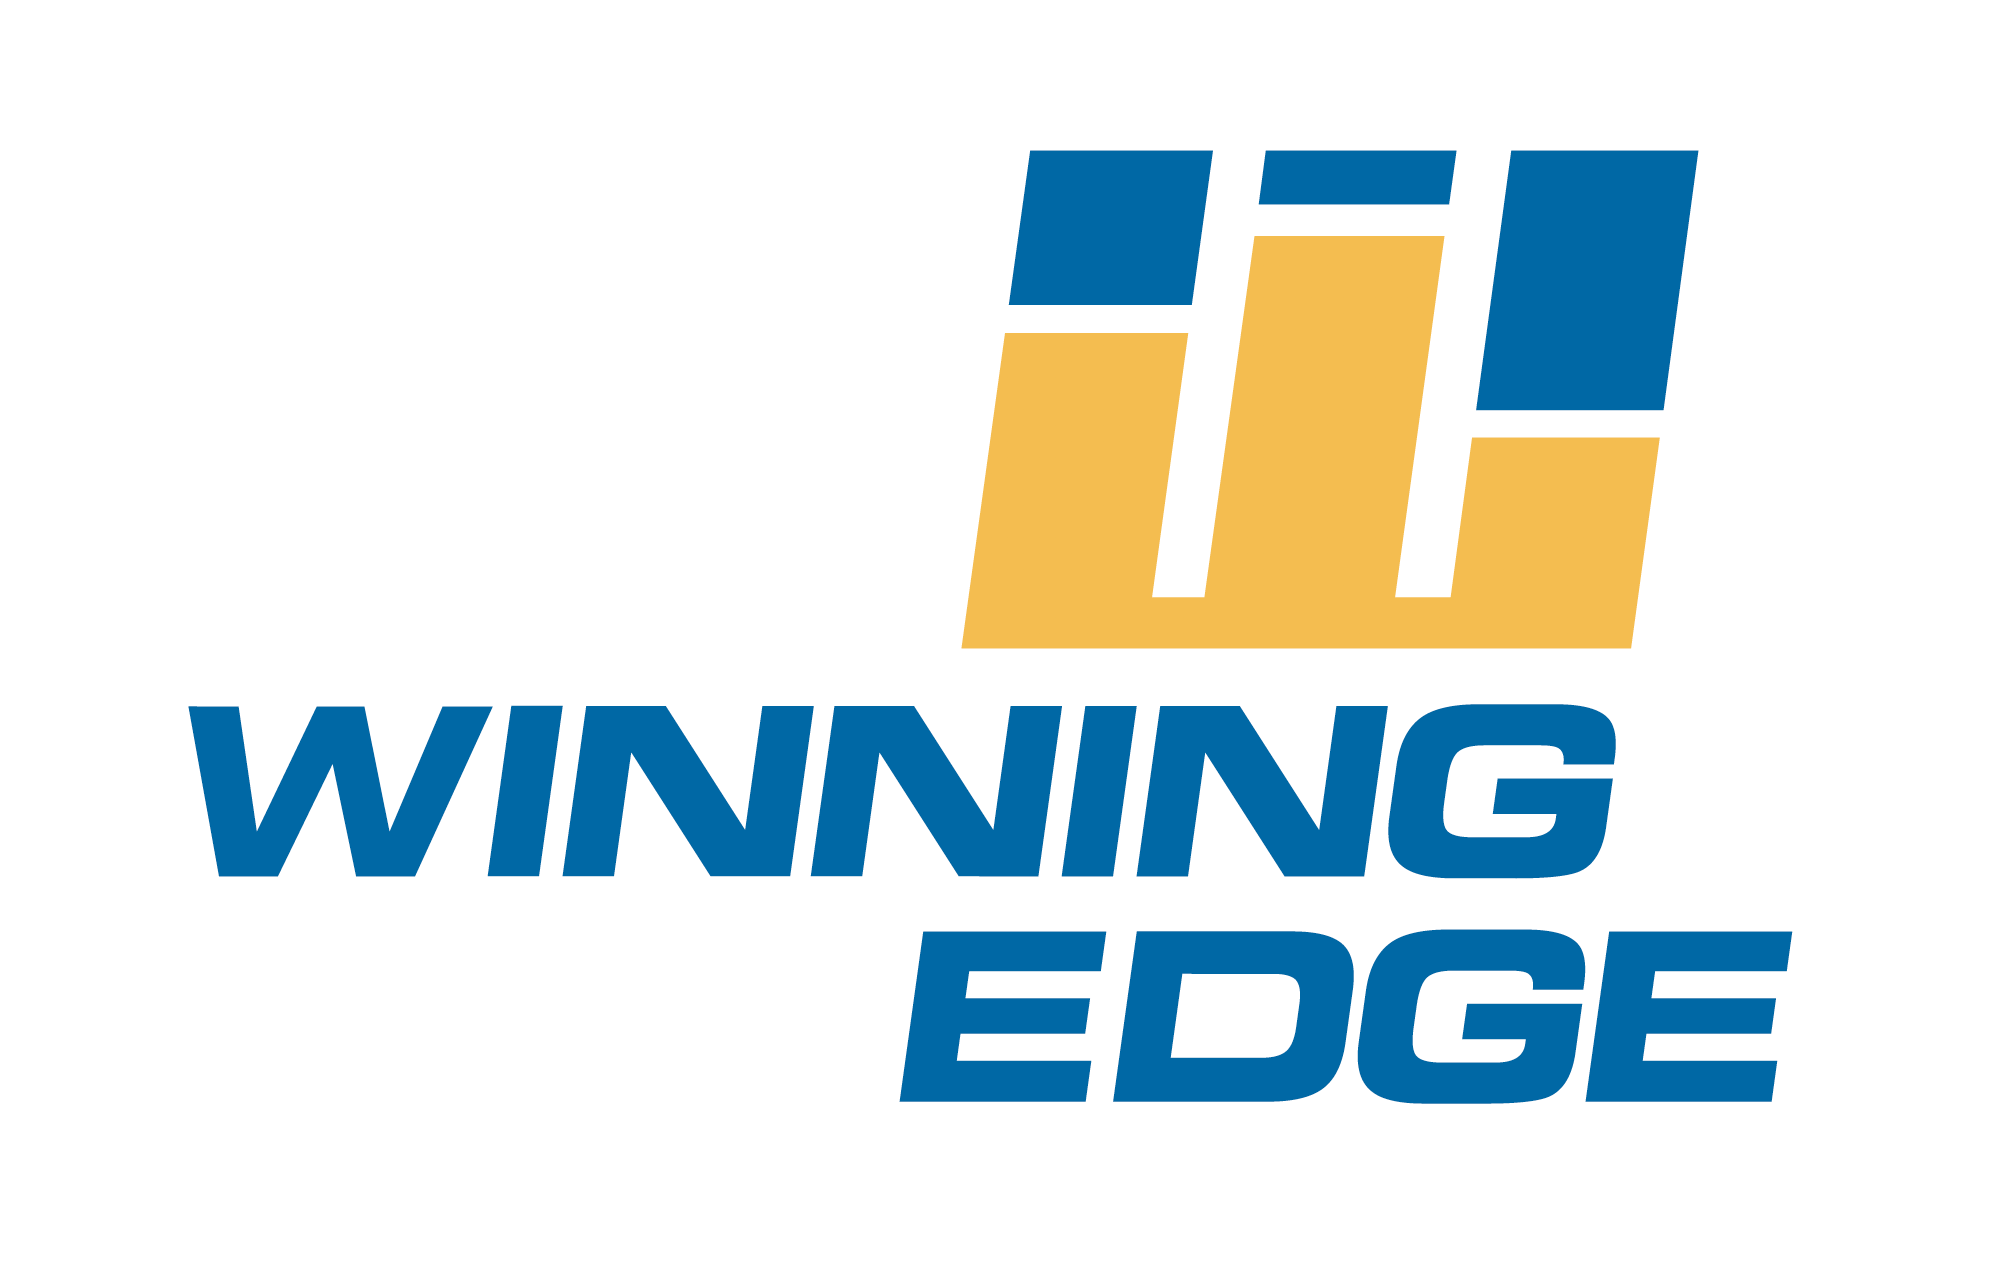 - Winning Edge Presentations is Australia's leading trophy, awards and promotional merchandising company specialising in making every presentation moment unique, affordable and memorable.